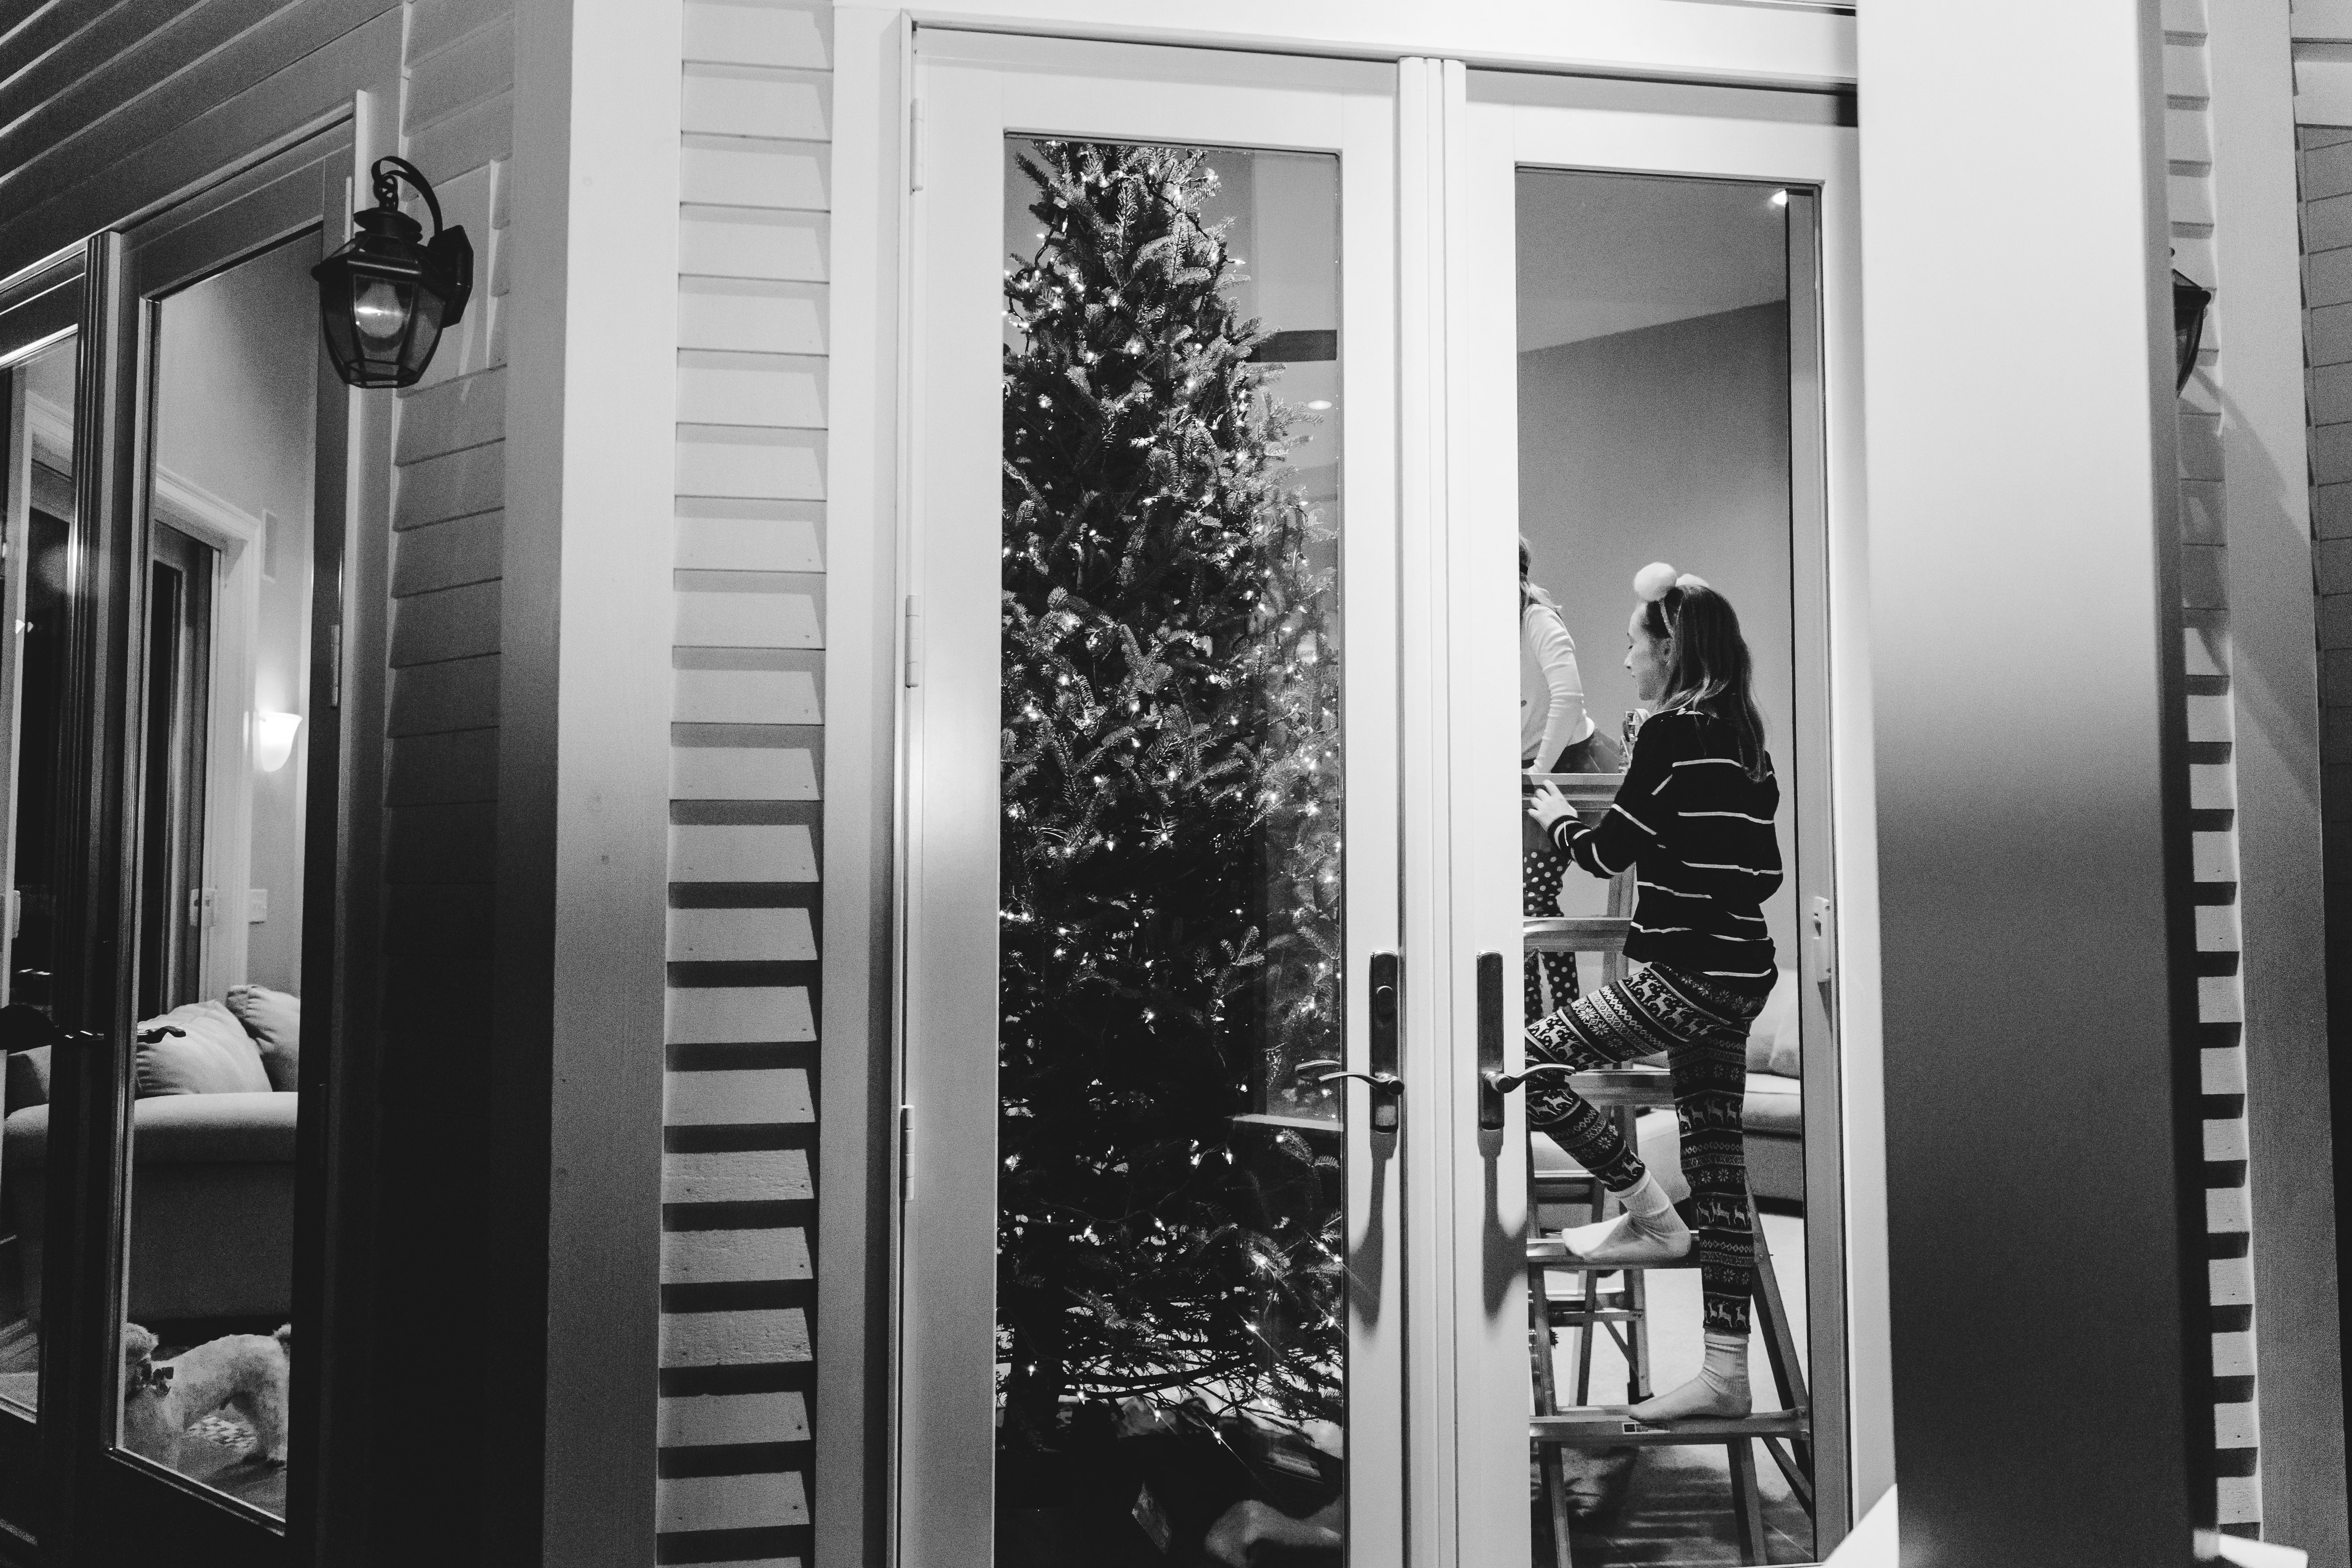 looking in glass doors at girl climbing ladder to decorate Christmas tree